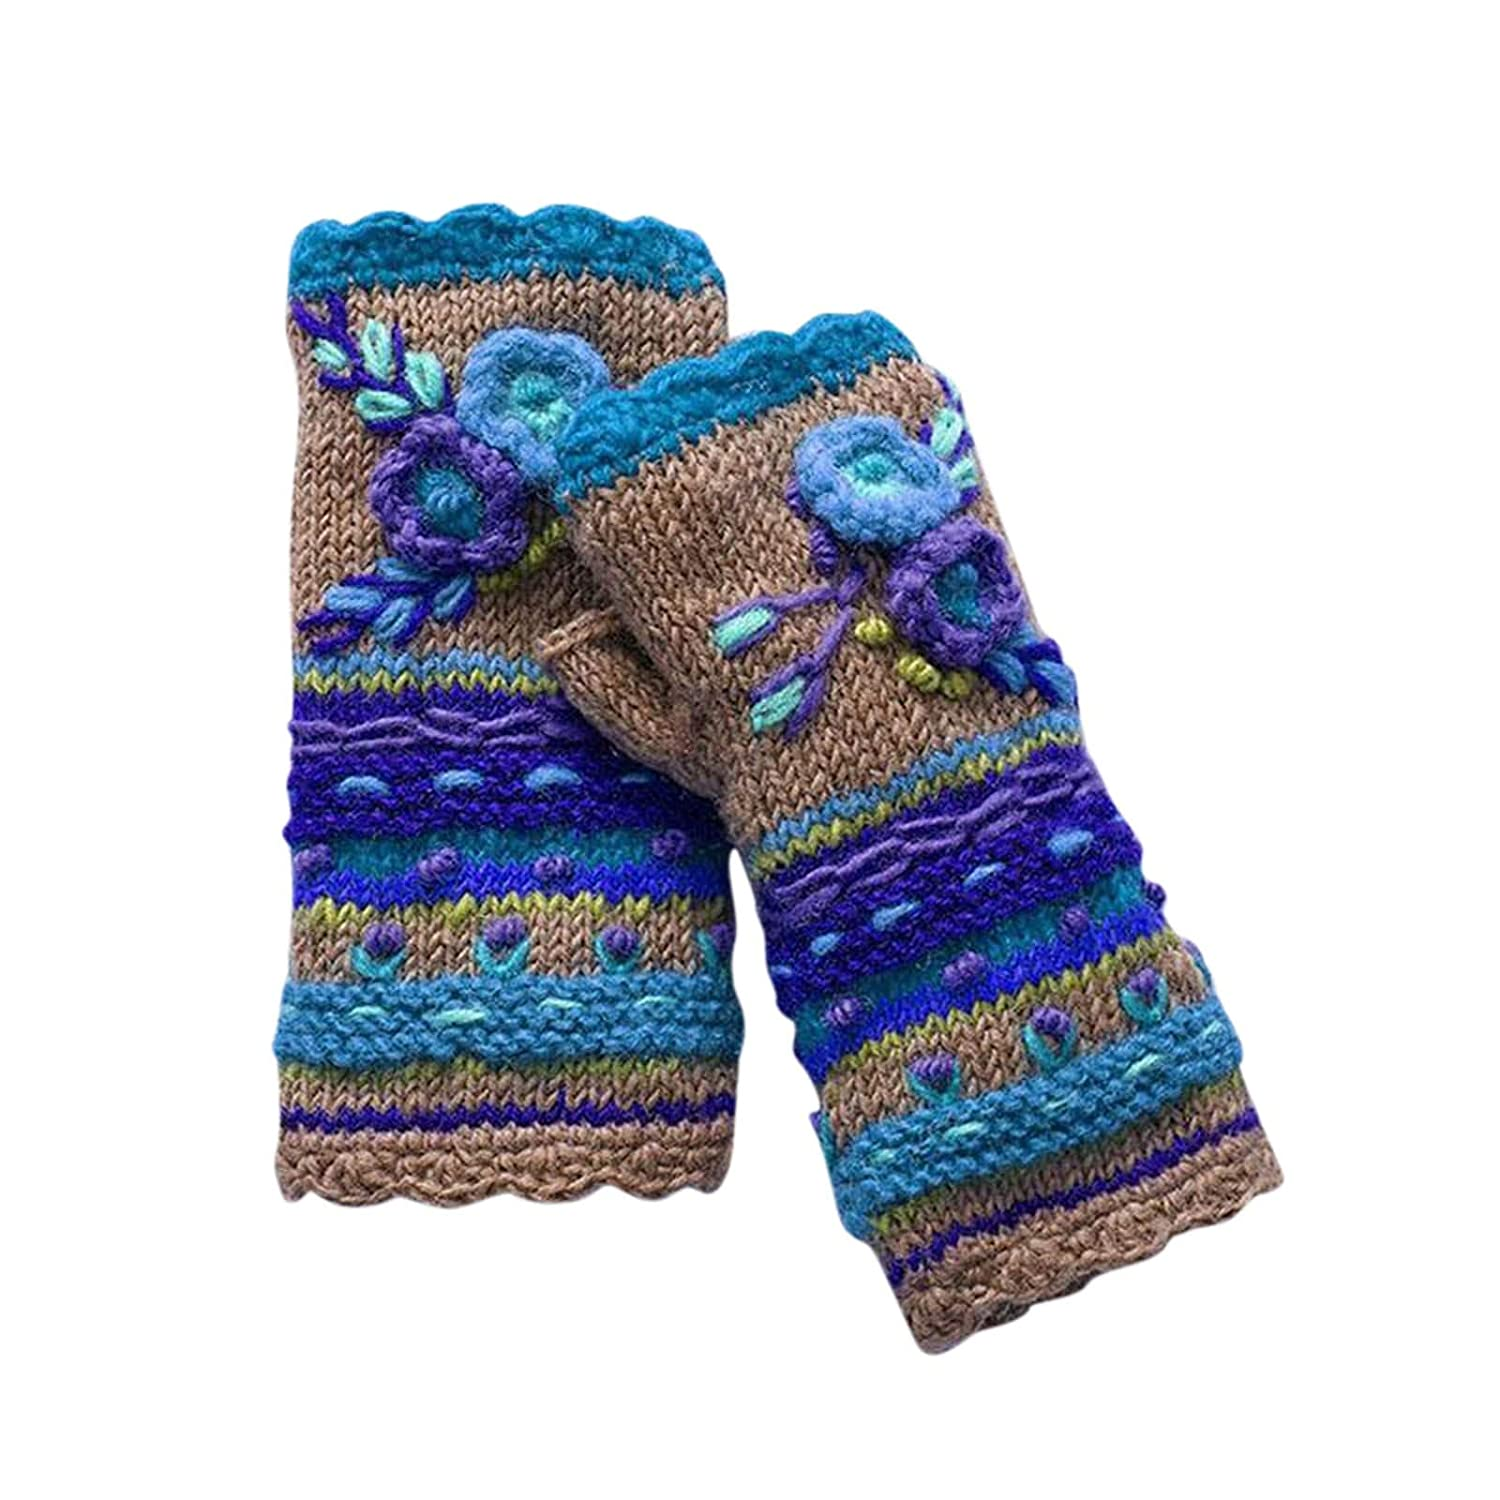 【USA In Stock】Hand Knit Fingerless Embroidered Flower Winter Wool Texting Gloves Mittens Warm Fleece Lined